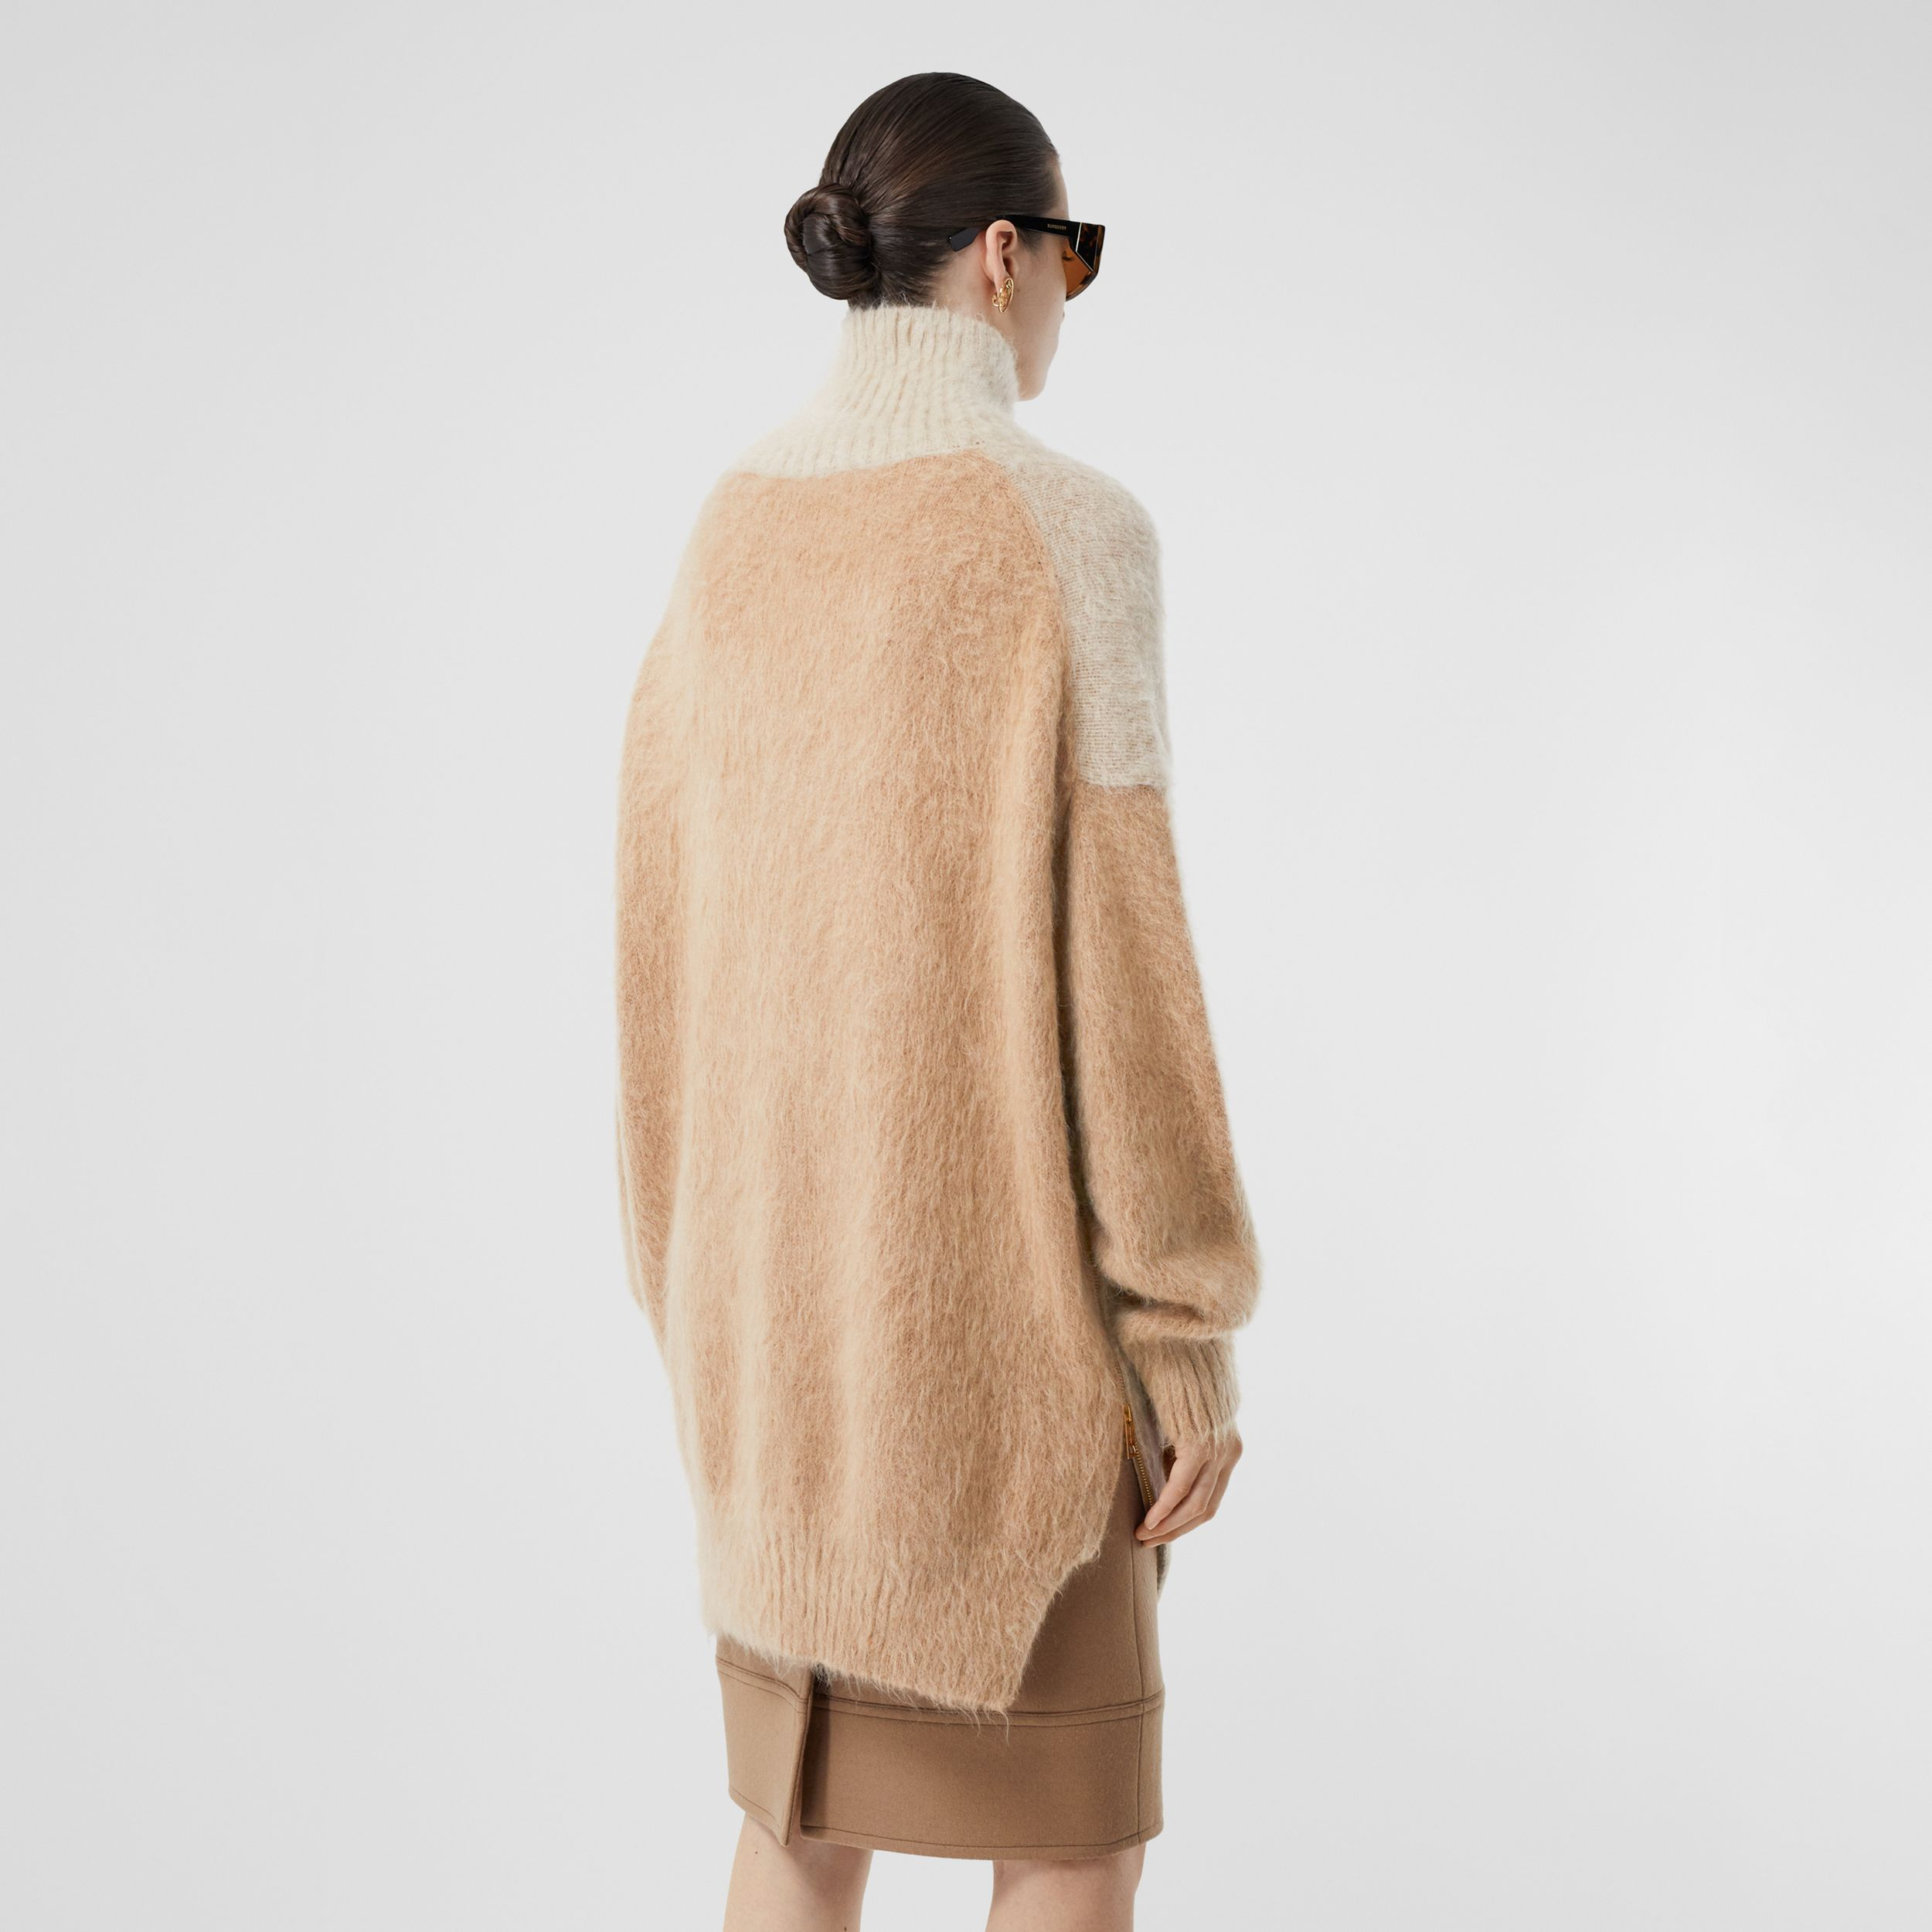 Wool Mohair Blend Oversized Turtleneck Sweater in Light Fawn - Women | Burberry - 3